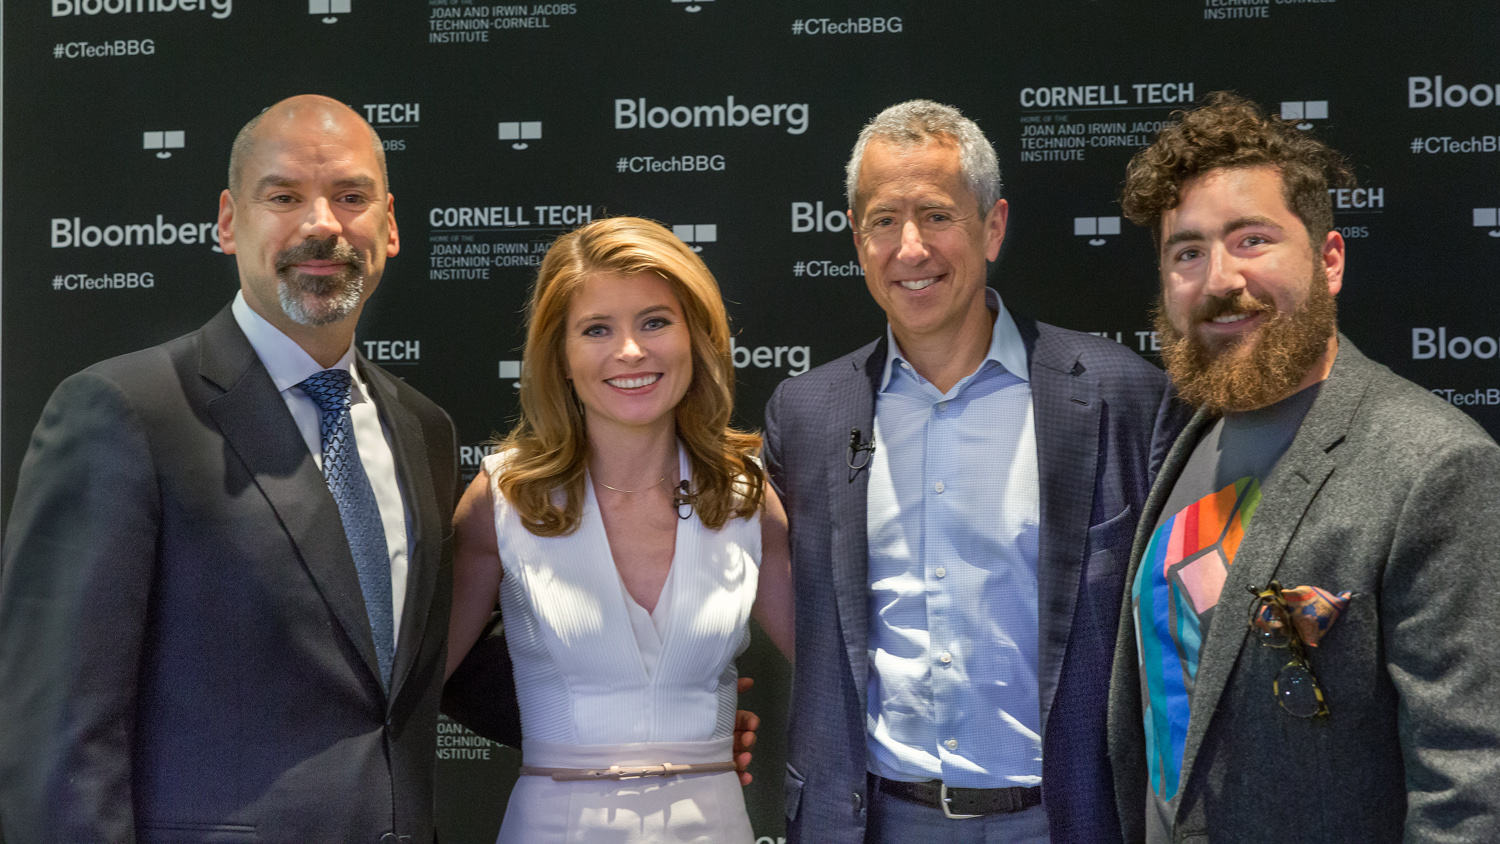 CornellTech@Bloomberg Speakers series which featured Danny Meyer, restaurateur, CEO of Union Square Hospitality Group and founder of Shake Shack., was held at Bloomberg Global Headquarters in New York on November 14, 2016.                          After more than thirty years in the industry Meyer remains a frontrunner in the New York City food scene, with consistently strong public reception, four-star customer experiences, and an unprecedented 28 James Beard Awards.   Meyer joined Vonnie Quinn of Bloomberg News for an onstage discussion about his career and life and the evolving intersection of hospitality and technology. As a pioneer of technological integrations, including Apple Watches in the newly renovated and iconic Union Square Cafe, to cutting edge restaurant concepts, and top notch employee benefits, Meyer's ideas continue to shake up and shape the future of restaurant services.  Photographer: Lori Hoffman/Bloomberg